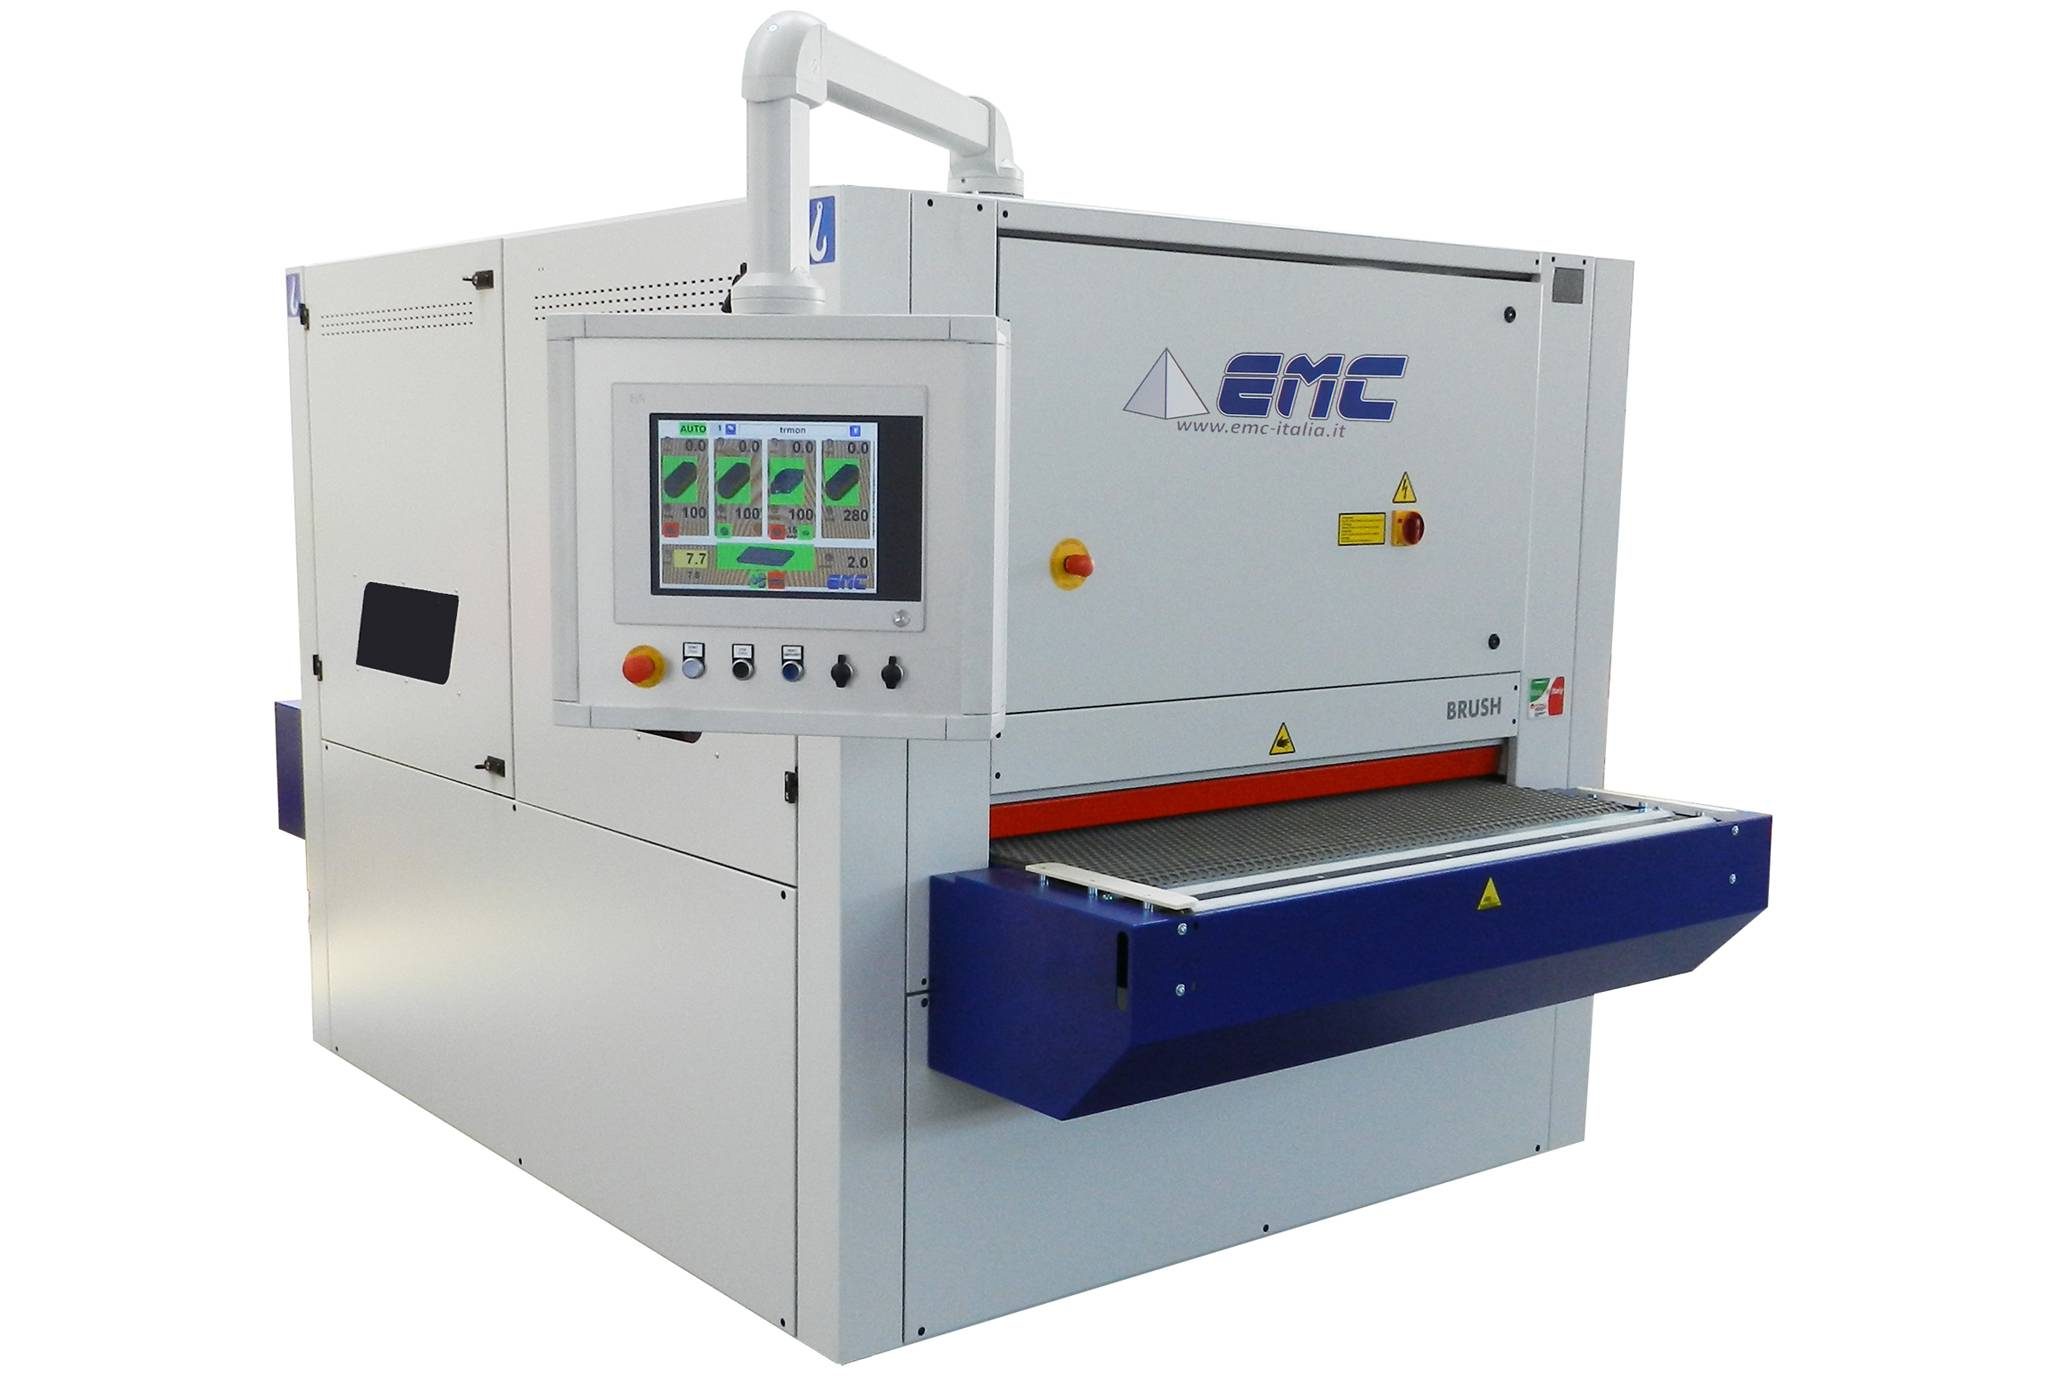 EMC | Finebrush 1350